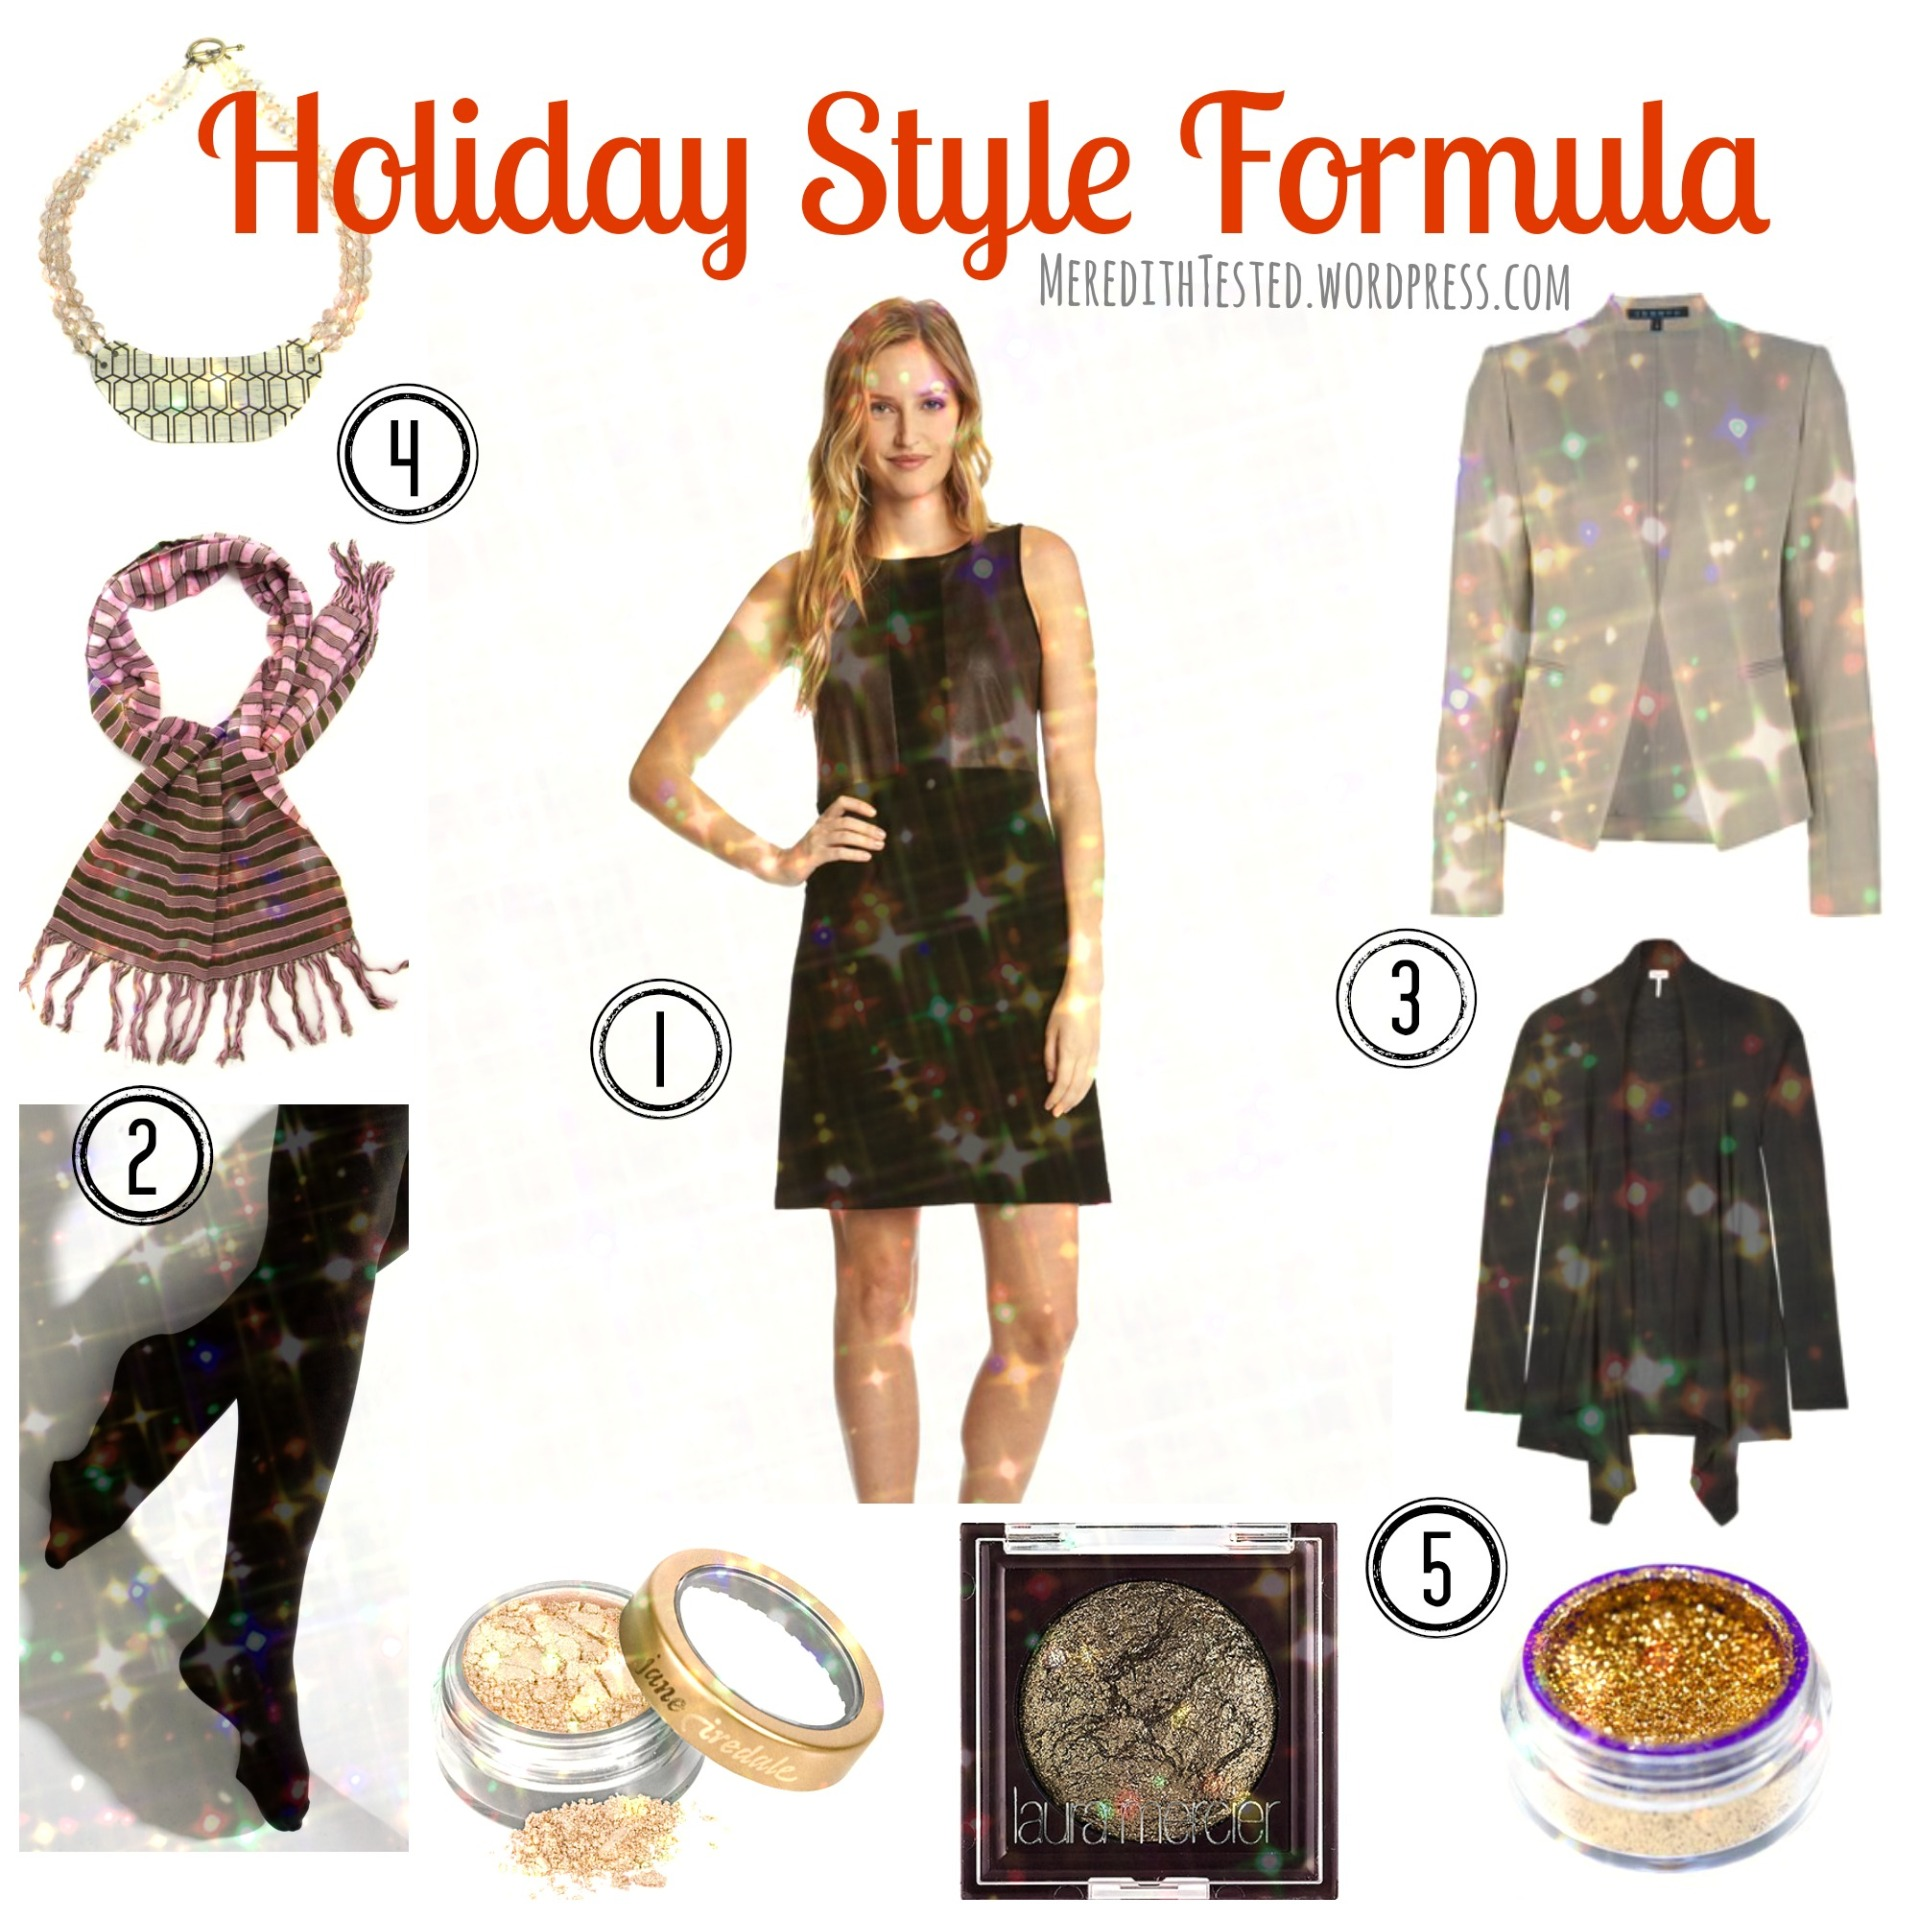 Holiday Style Formula from MeredithTested.wordpress.com, tips for holiday parties, how to dress on Christmas